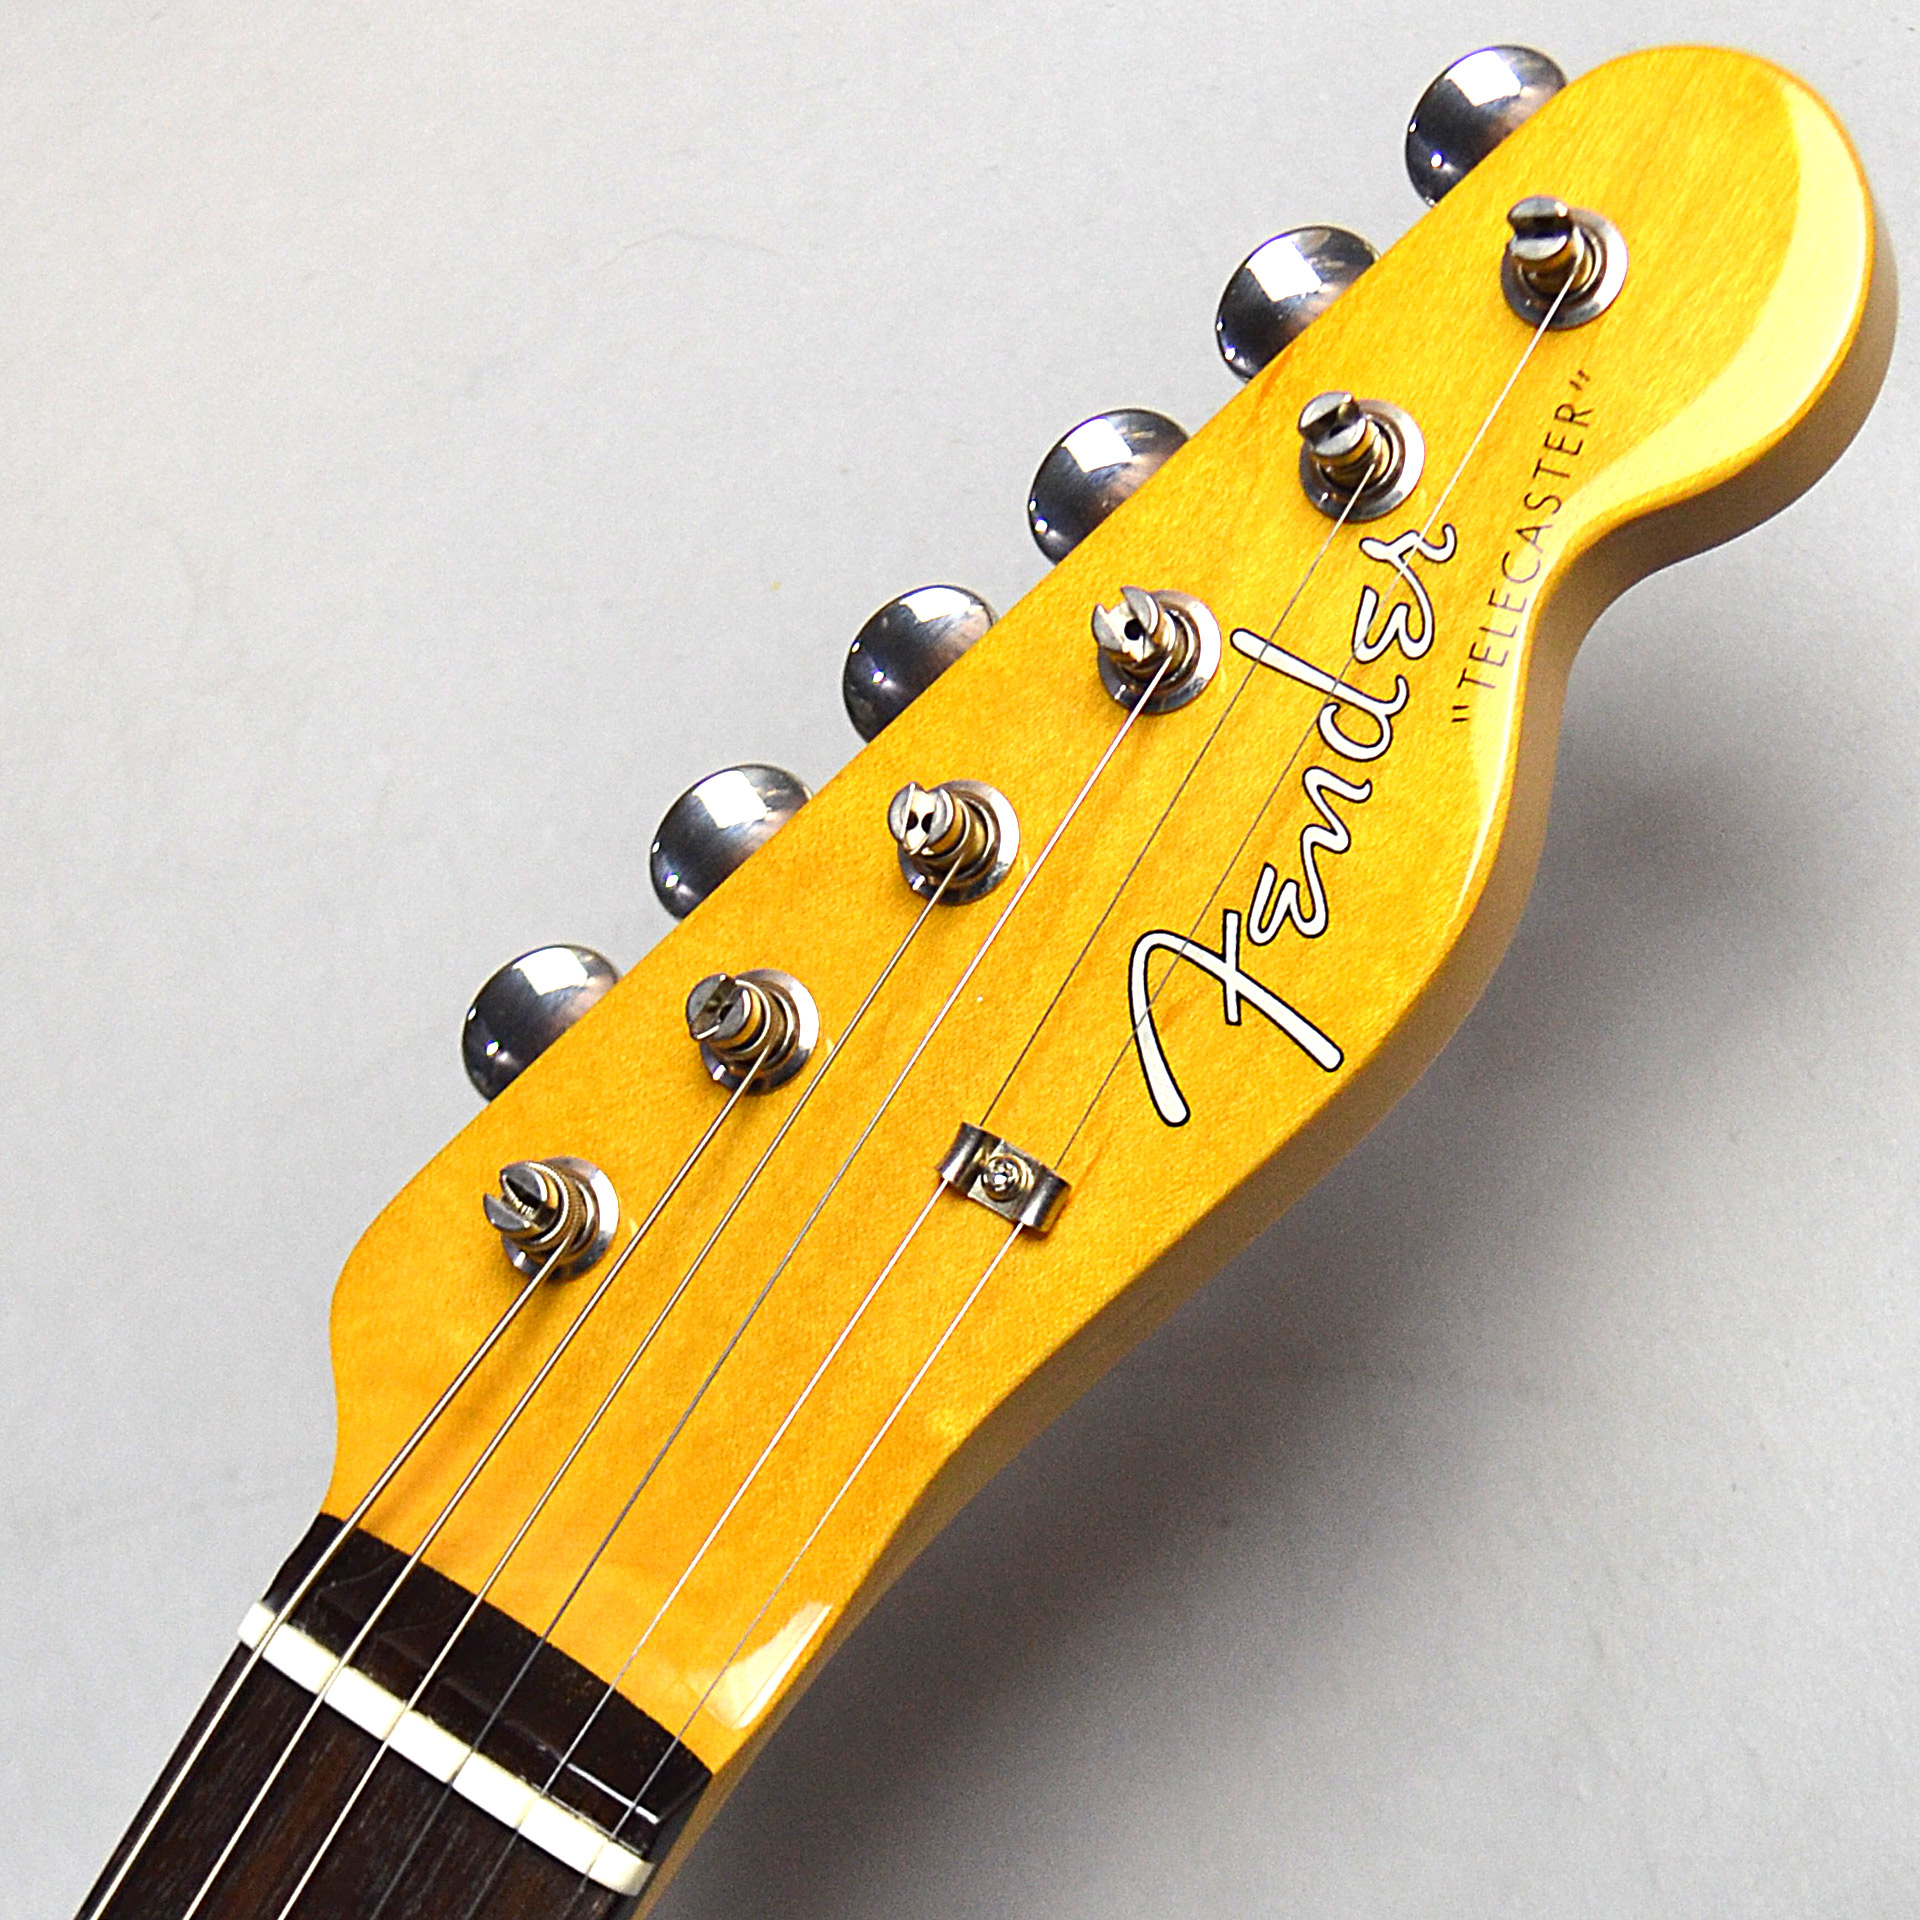 MADE IN JAPAN TRADITIONAL 60S TELECASTER CUSTOMのヘッド裏-アップ画像